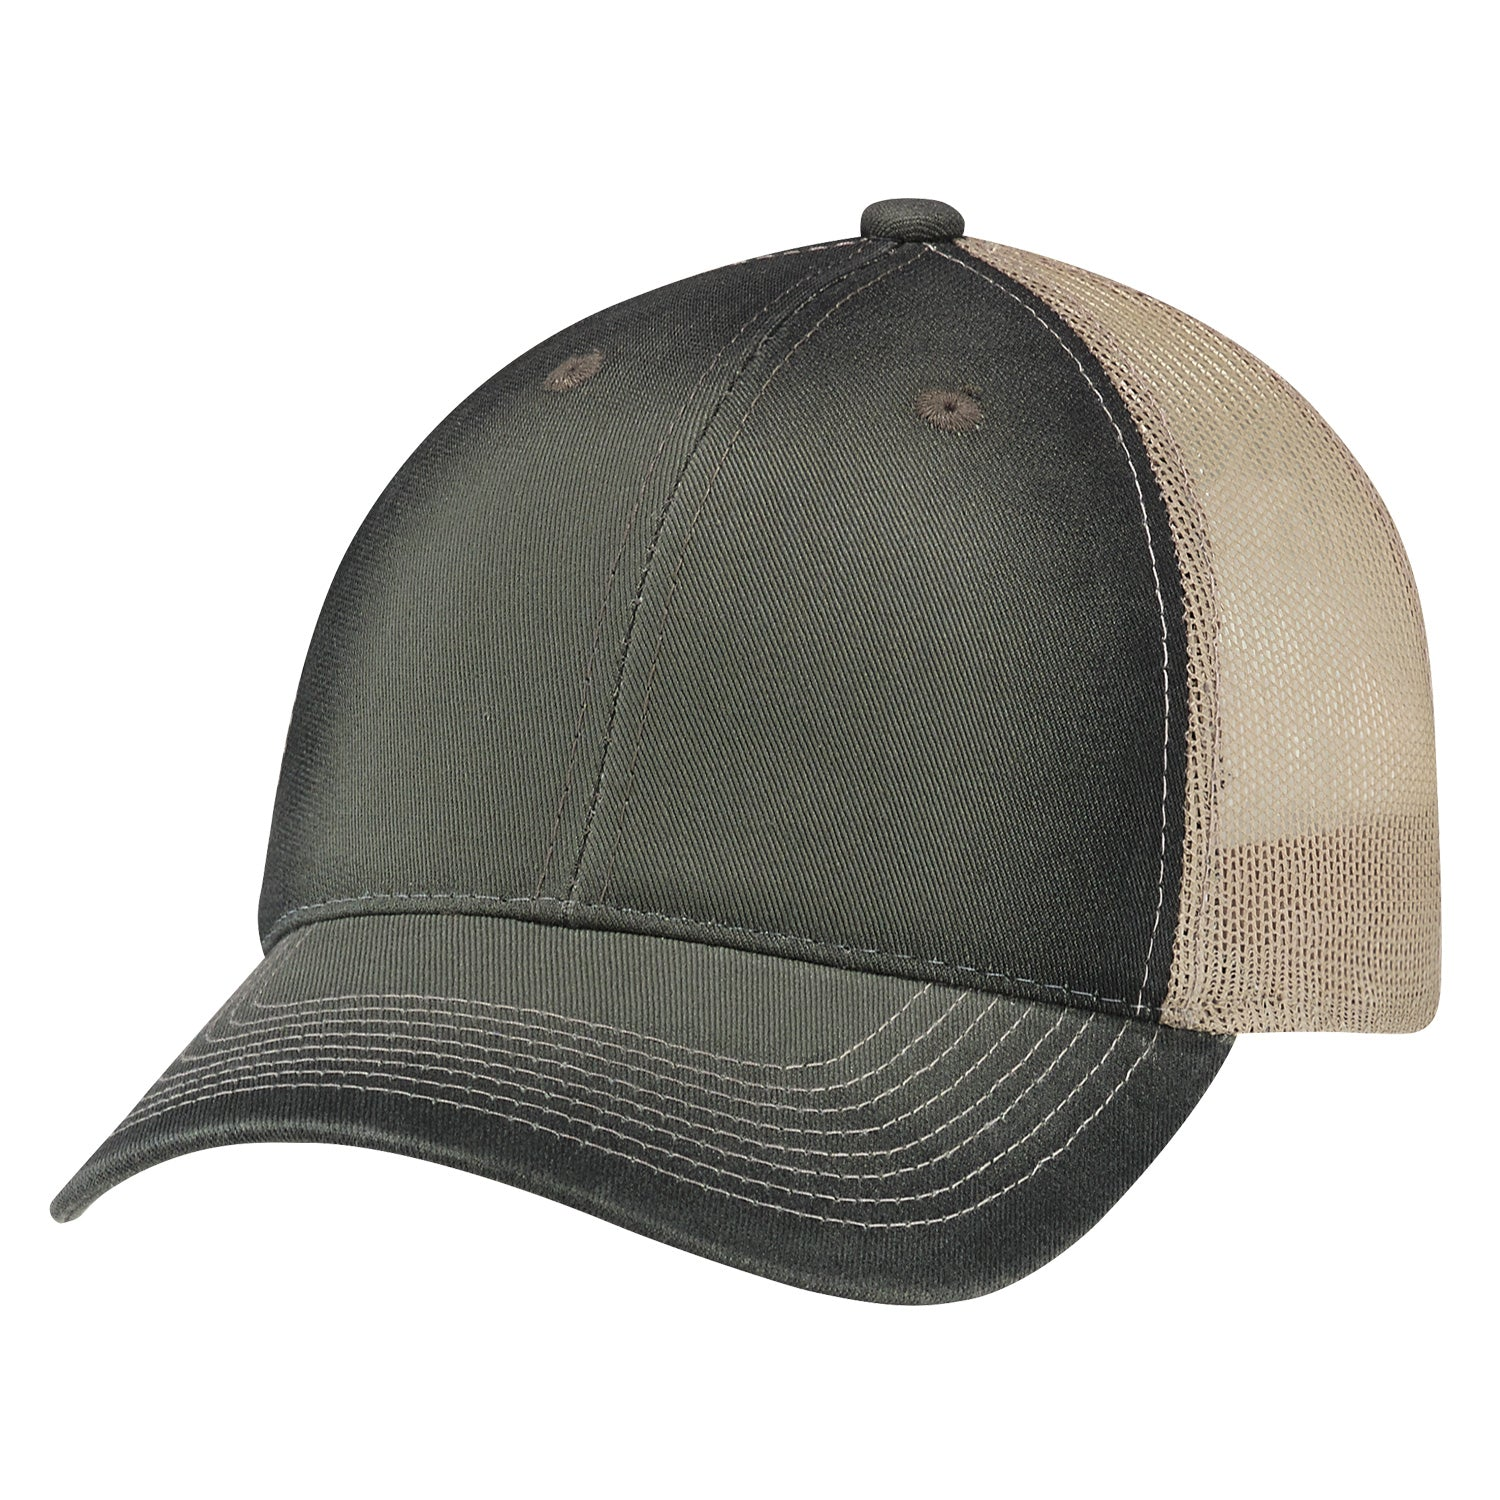 AJM DELUXE CHINO TWILL SOFT NYLON MESH BACK HAT